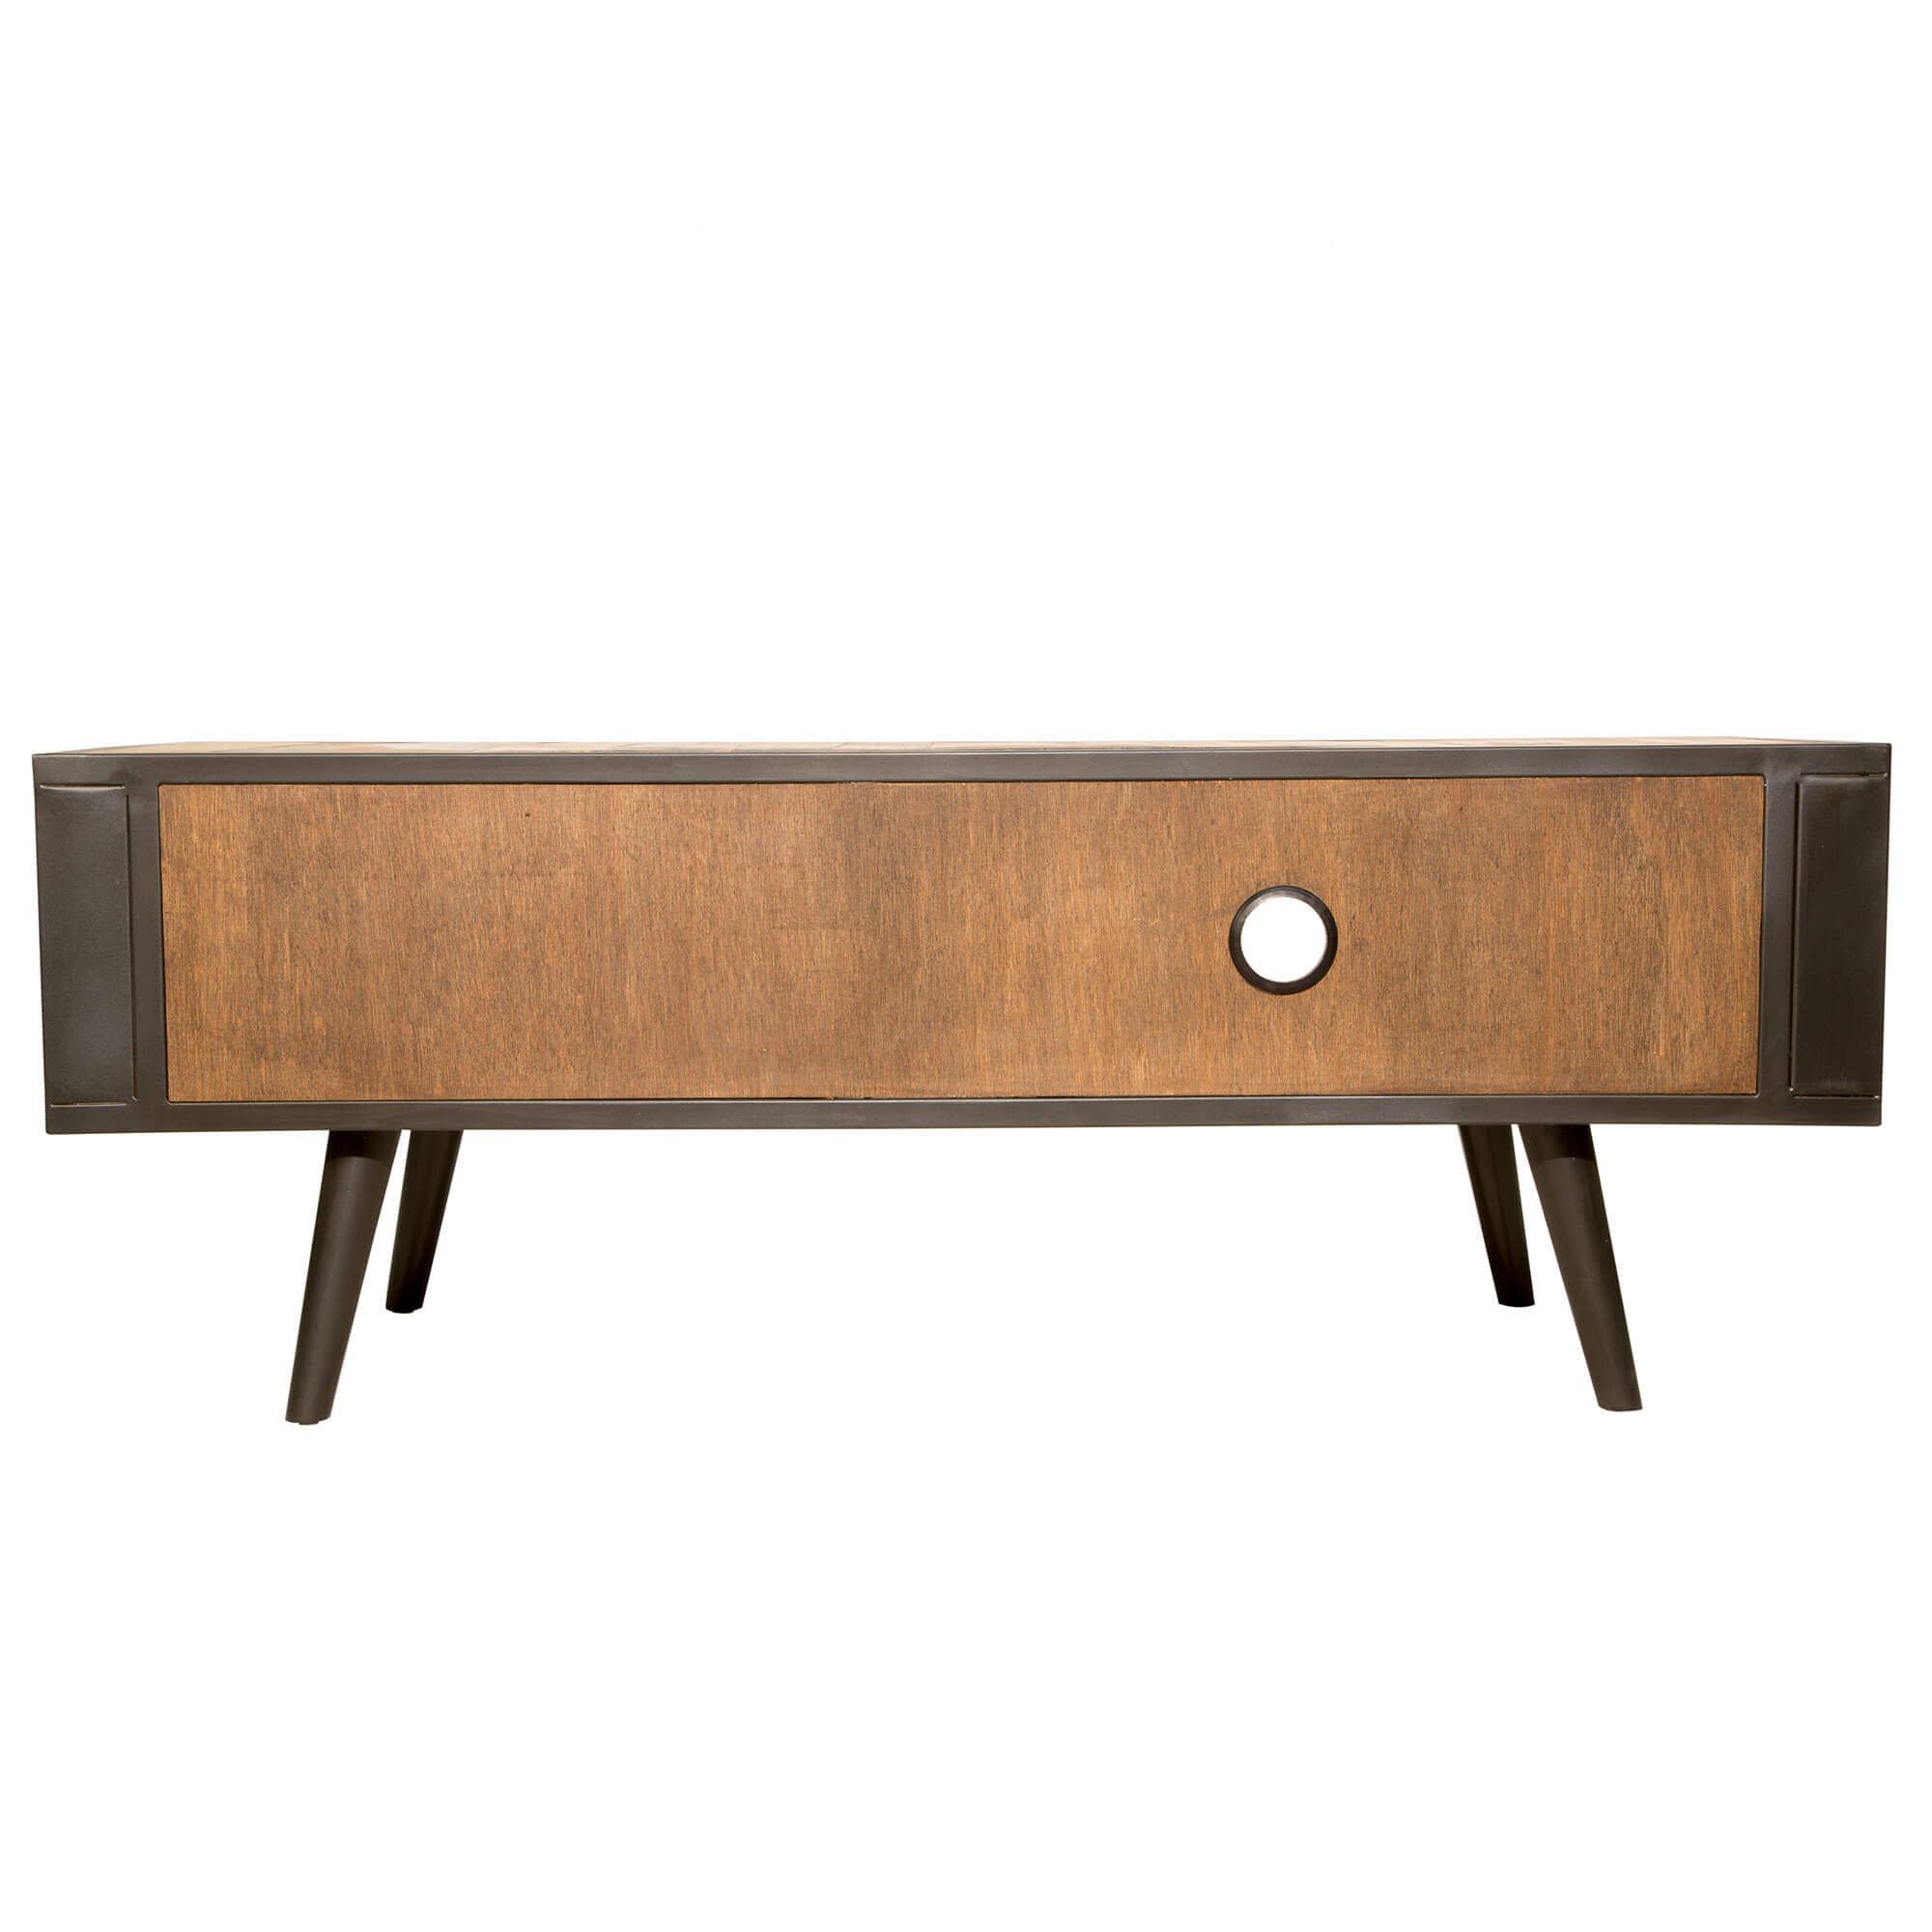 Furniture Supplies UK  Coffee Table|TV Stand